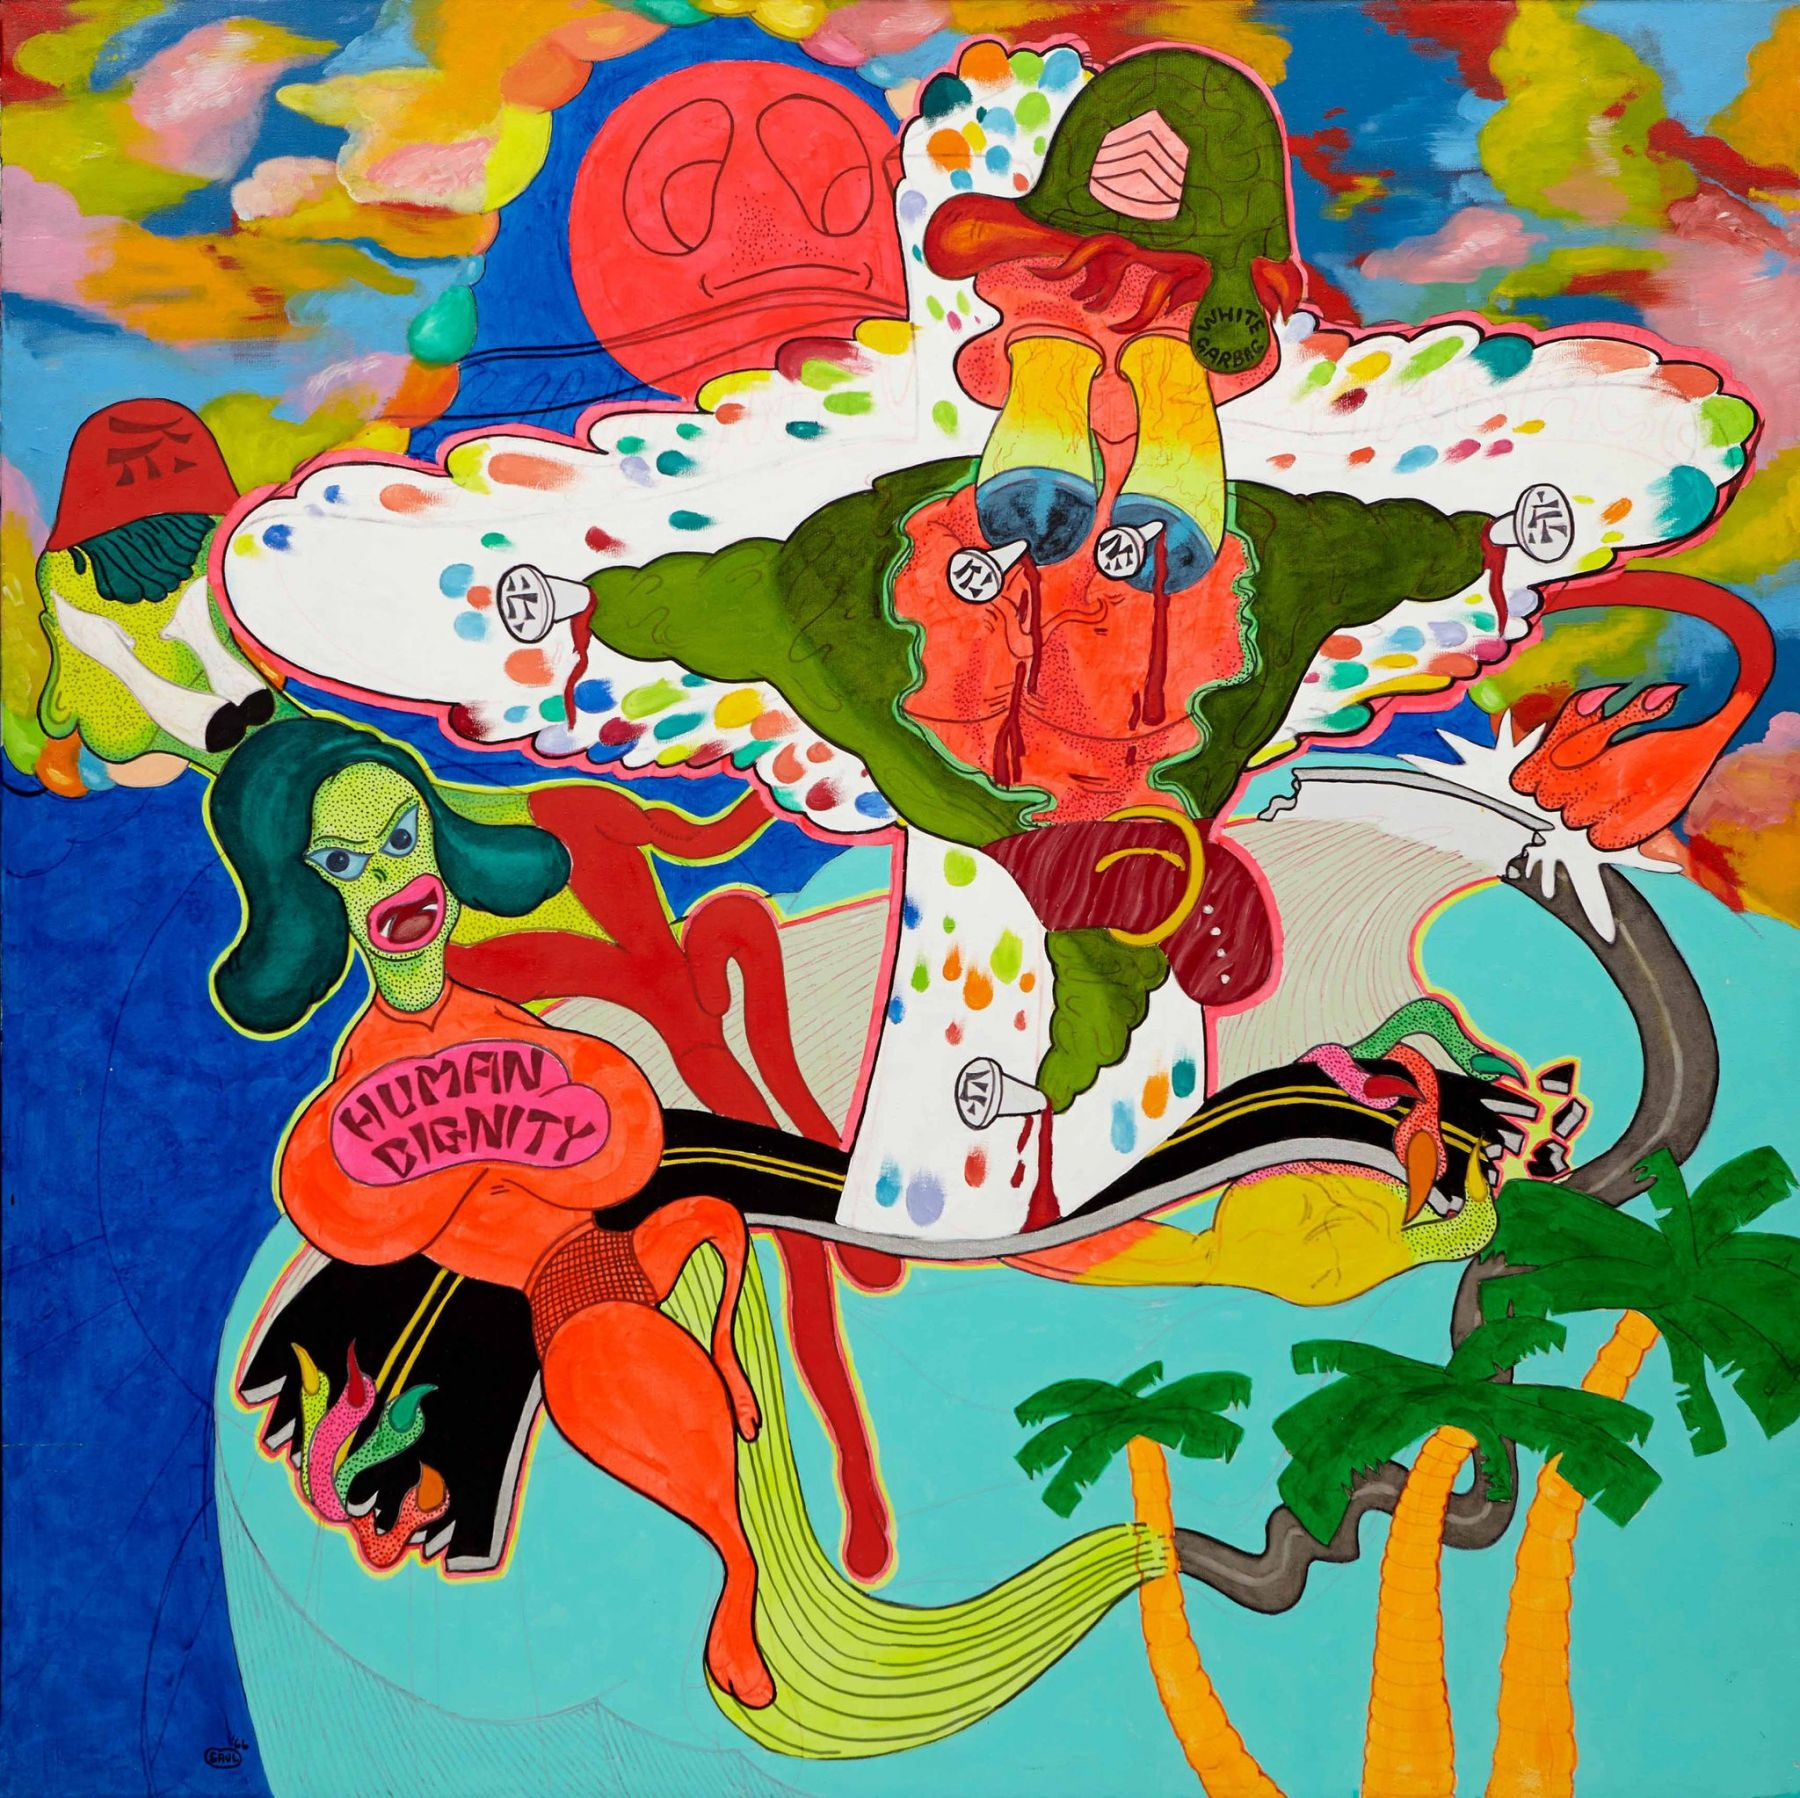 """Peter Saul: From Pop to Punk""""Human Dignity"""" (1966) in this show at the Venus Over Manhattan gallery. Credit Courtesy of the Artist and Venus Over Manhattan"""